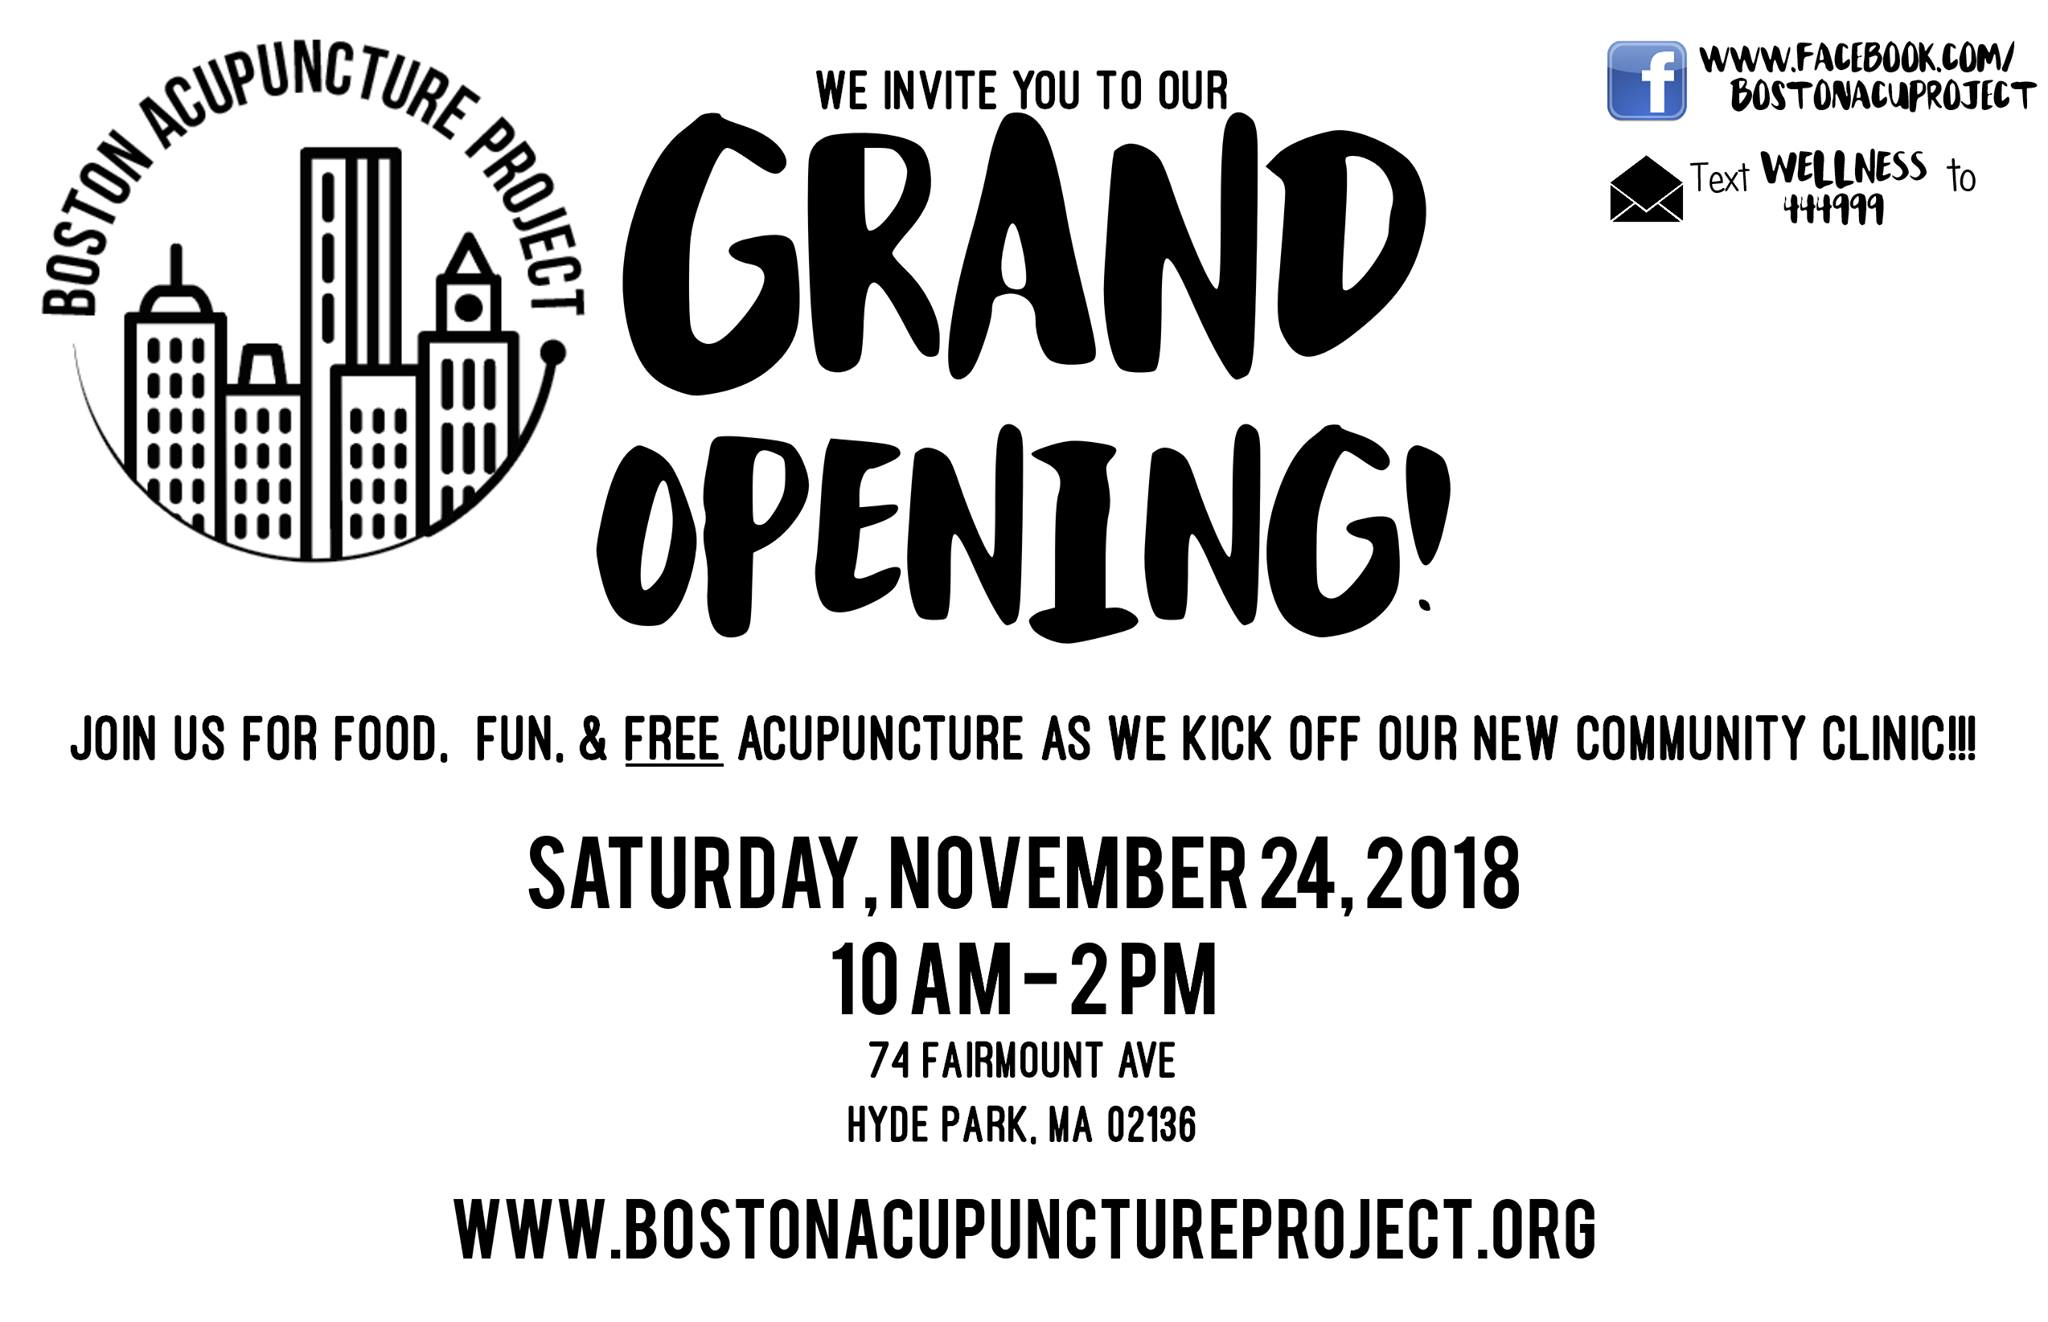 Boston Acupuncture Project - we invite you to our Grand Opening! Join us for food, fun, and FREE acupuncture as we kick off our new community clinic!!! Saturday, November 24, 2018 from 10am-2pm at 74 Fairmount Ave, Hyde Park, MA 02136. www.bostonacupunctureproject.org or facebook.com/bostonacuproject or text WELLNESS to 444999